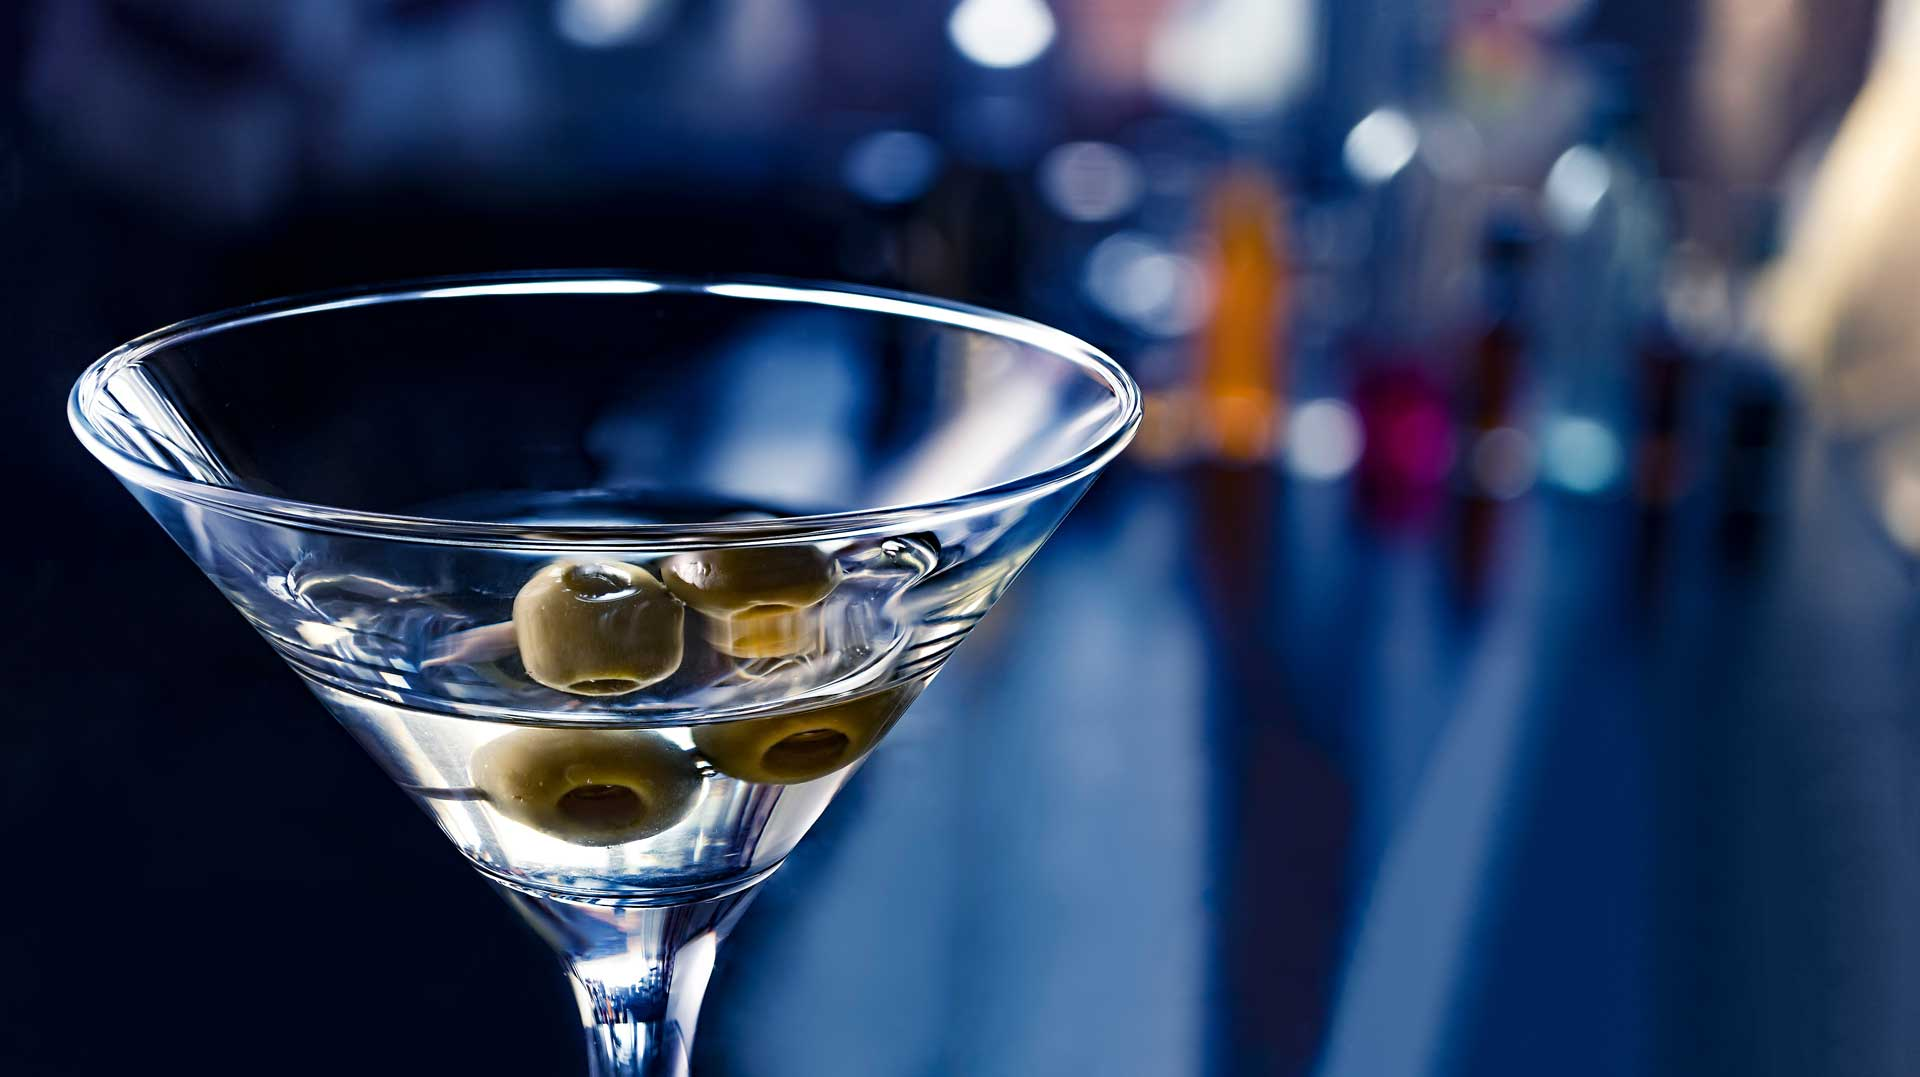 No-time-to-die-007-James-Bond-Coqtail-Milano